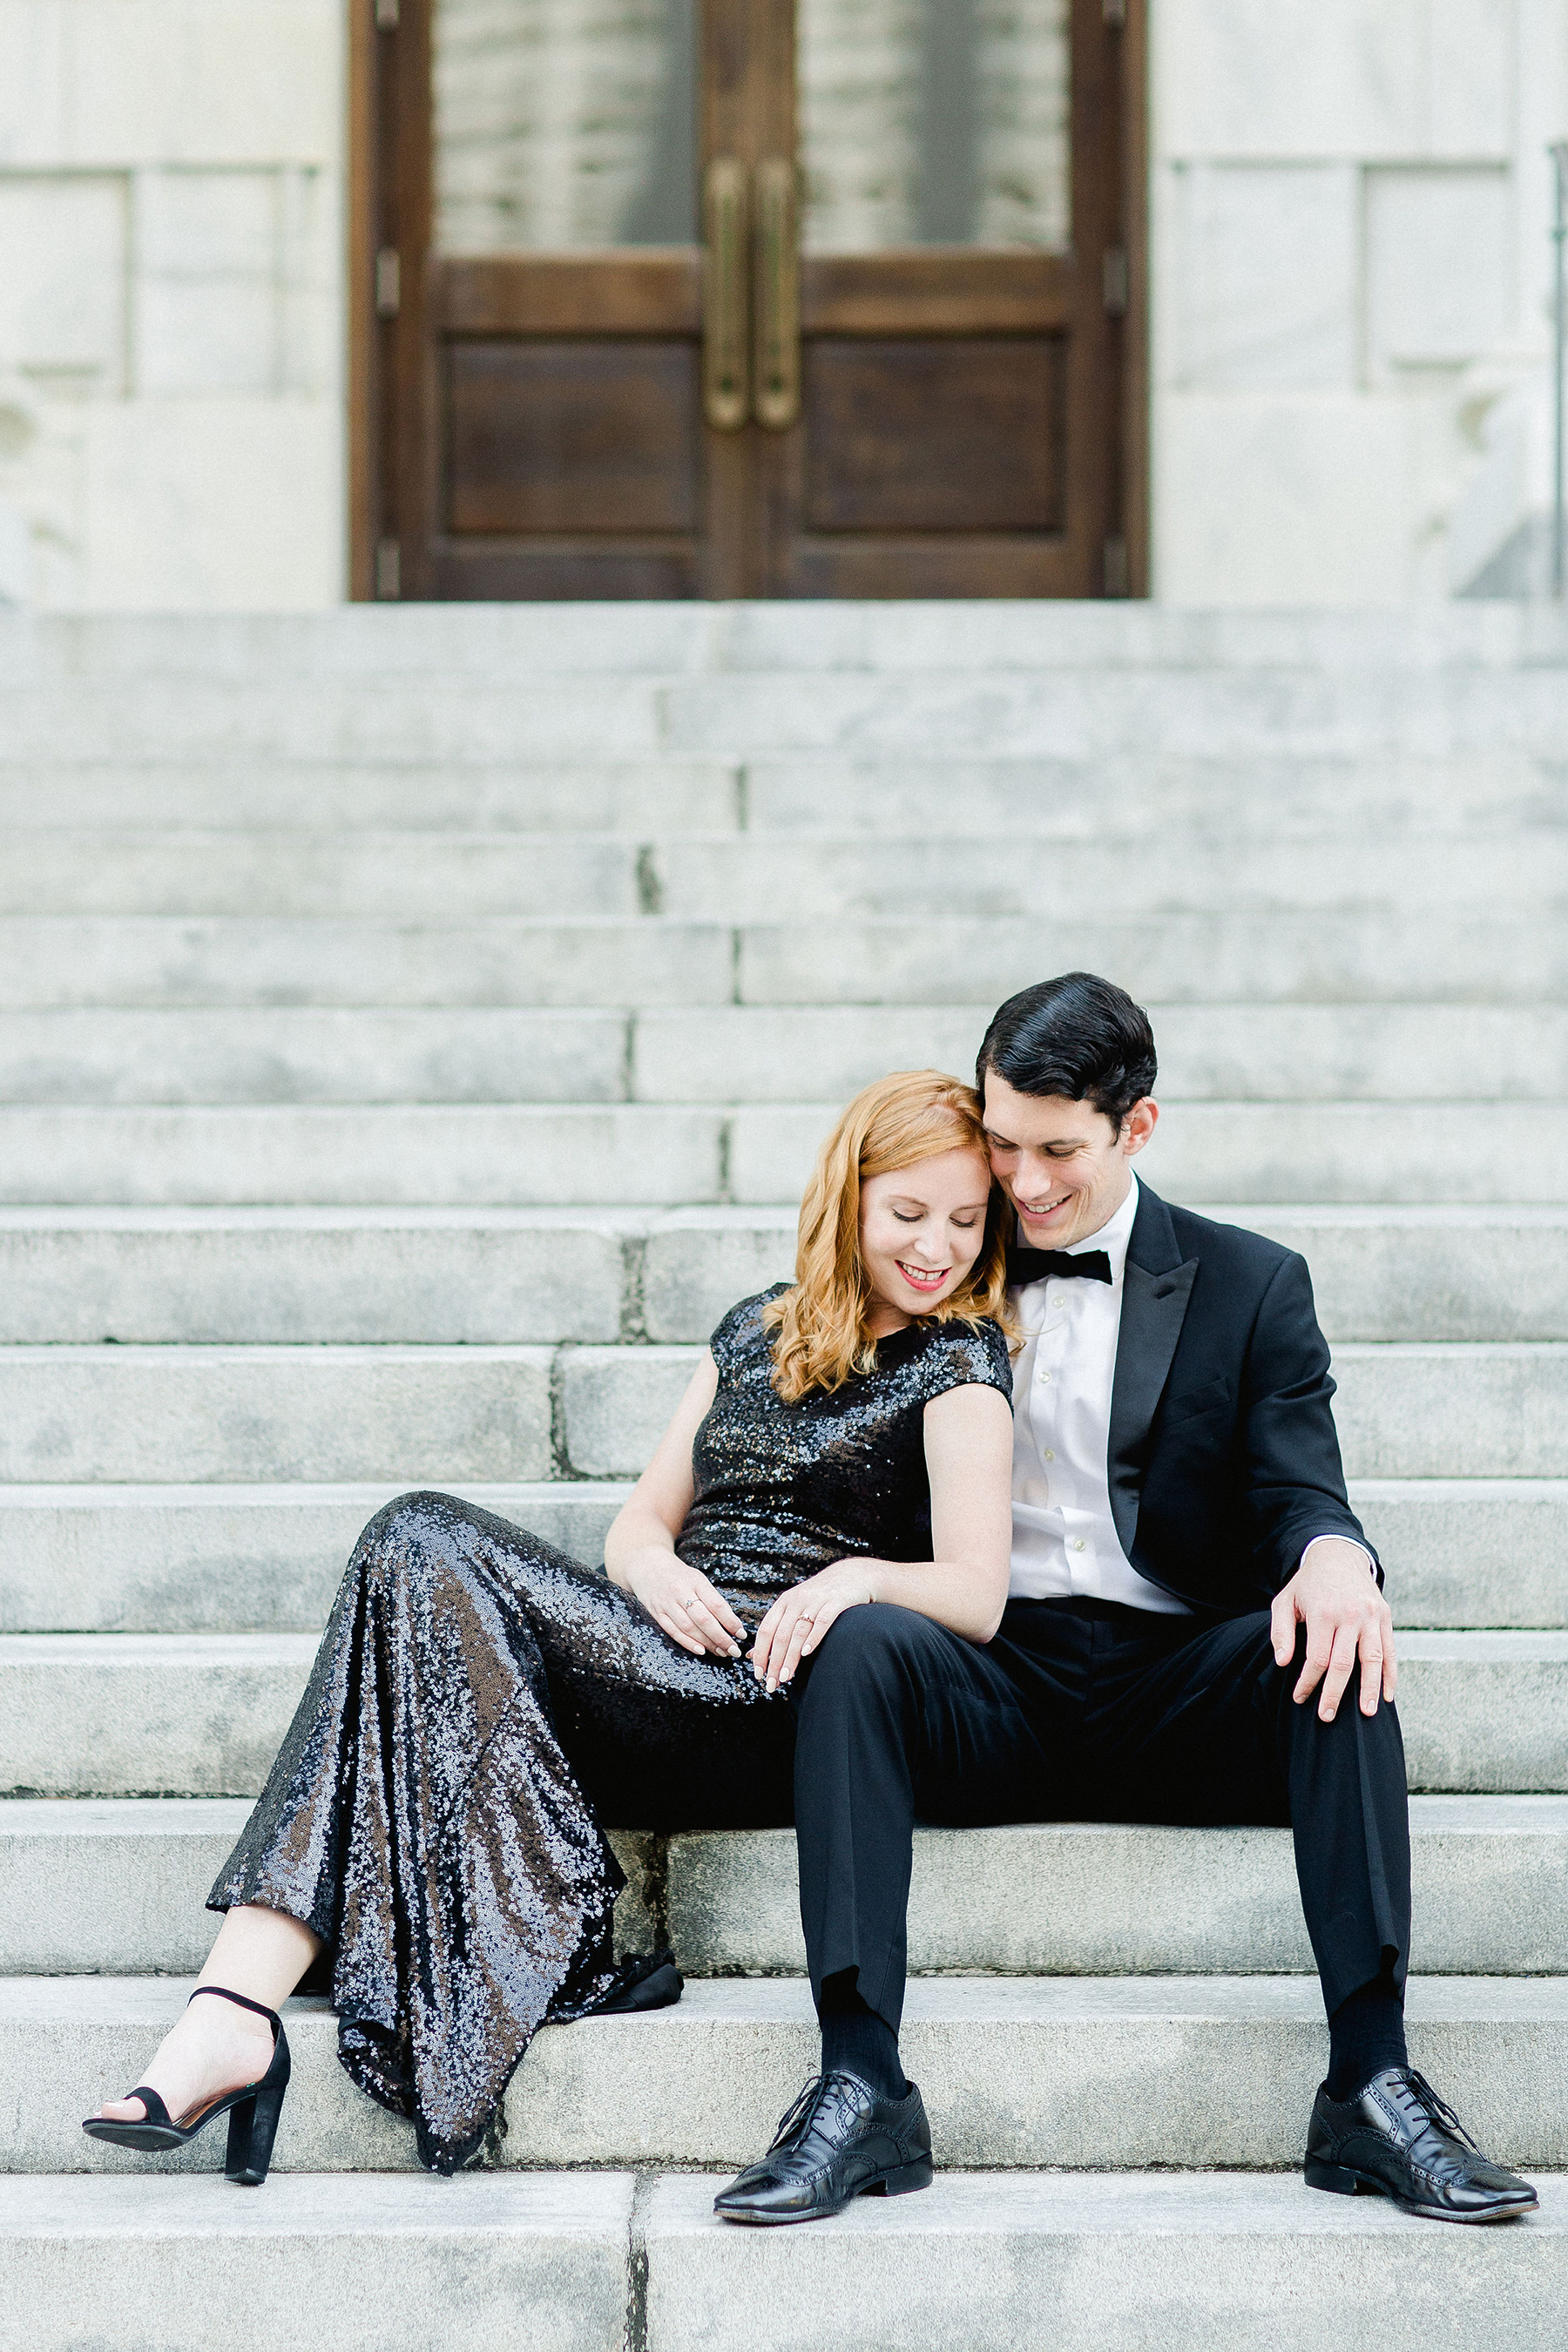 Photos by Ailyn La Torre Photography